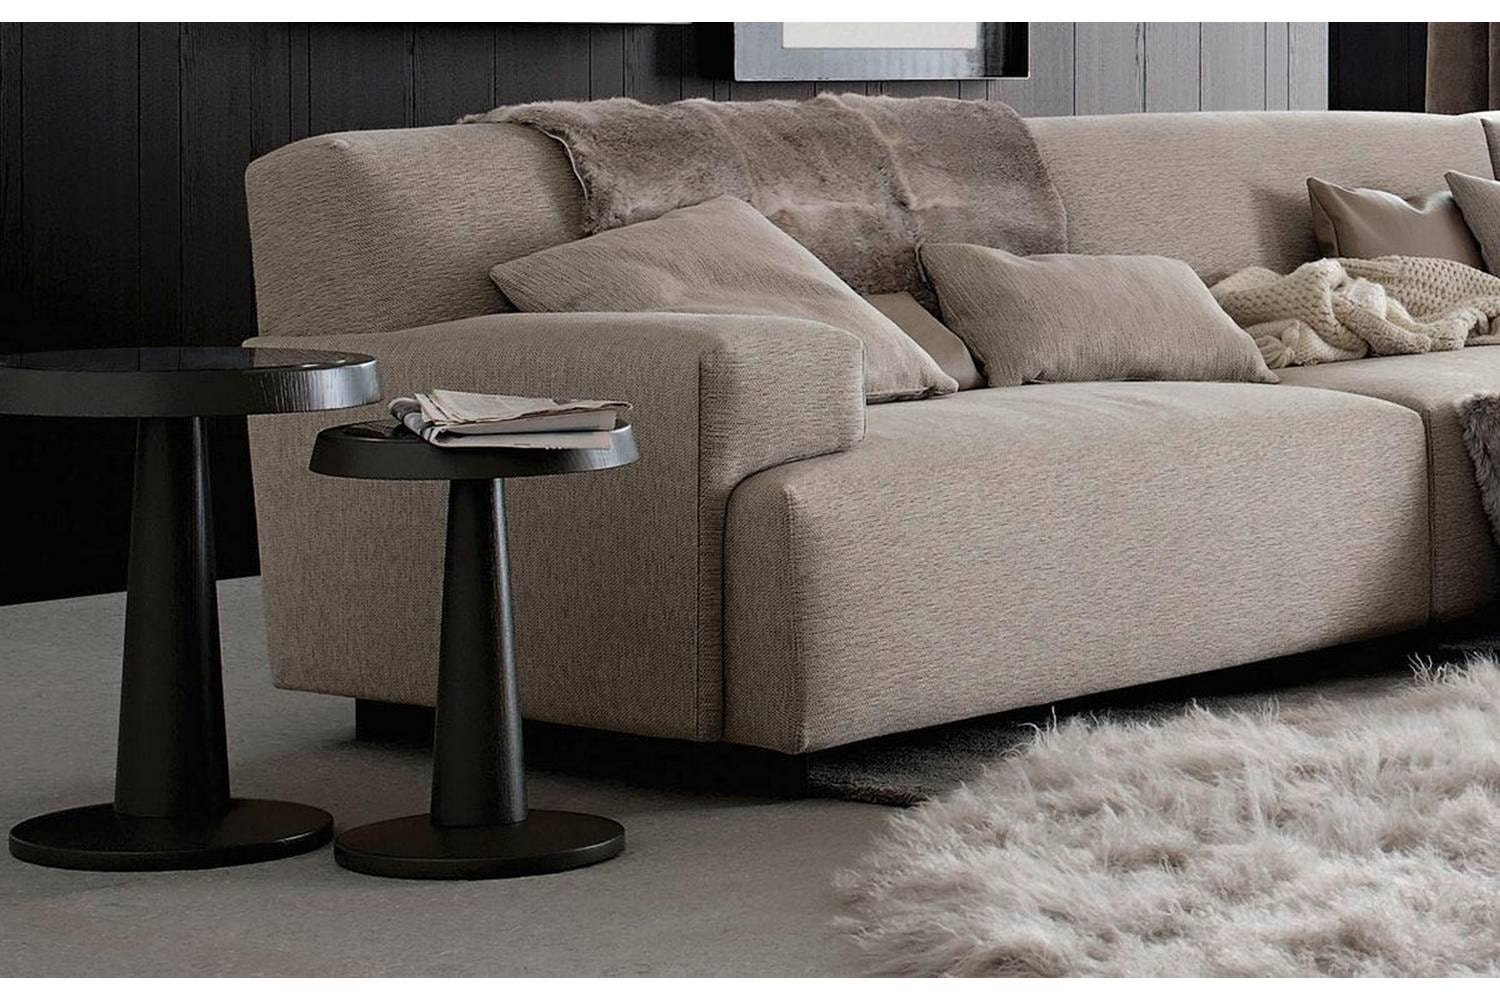 Anna Coffee Table by Flaviano Capriotti for Poliform